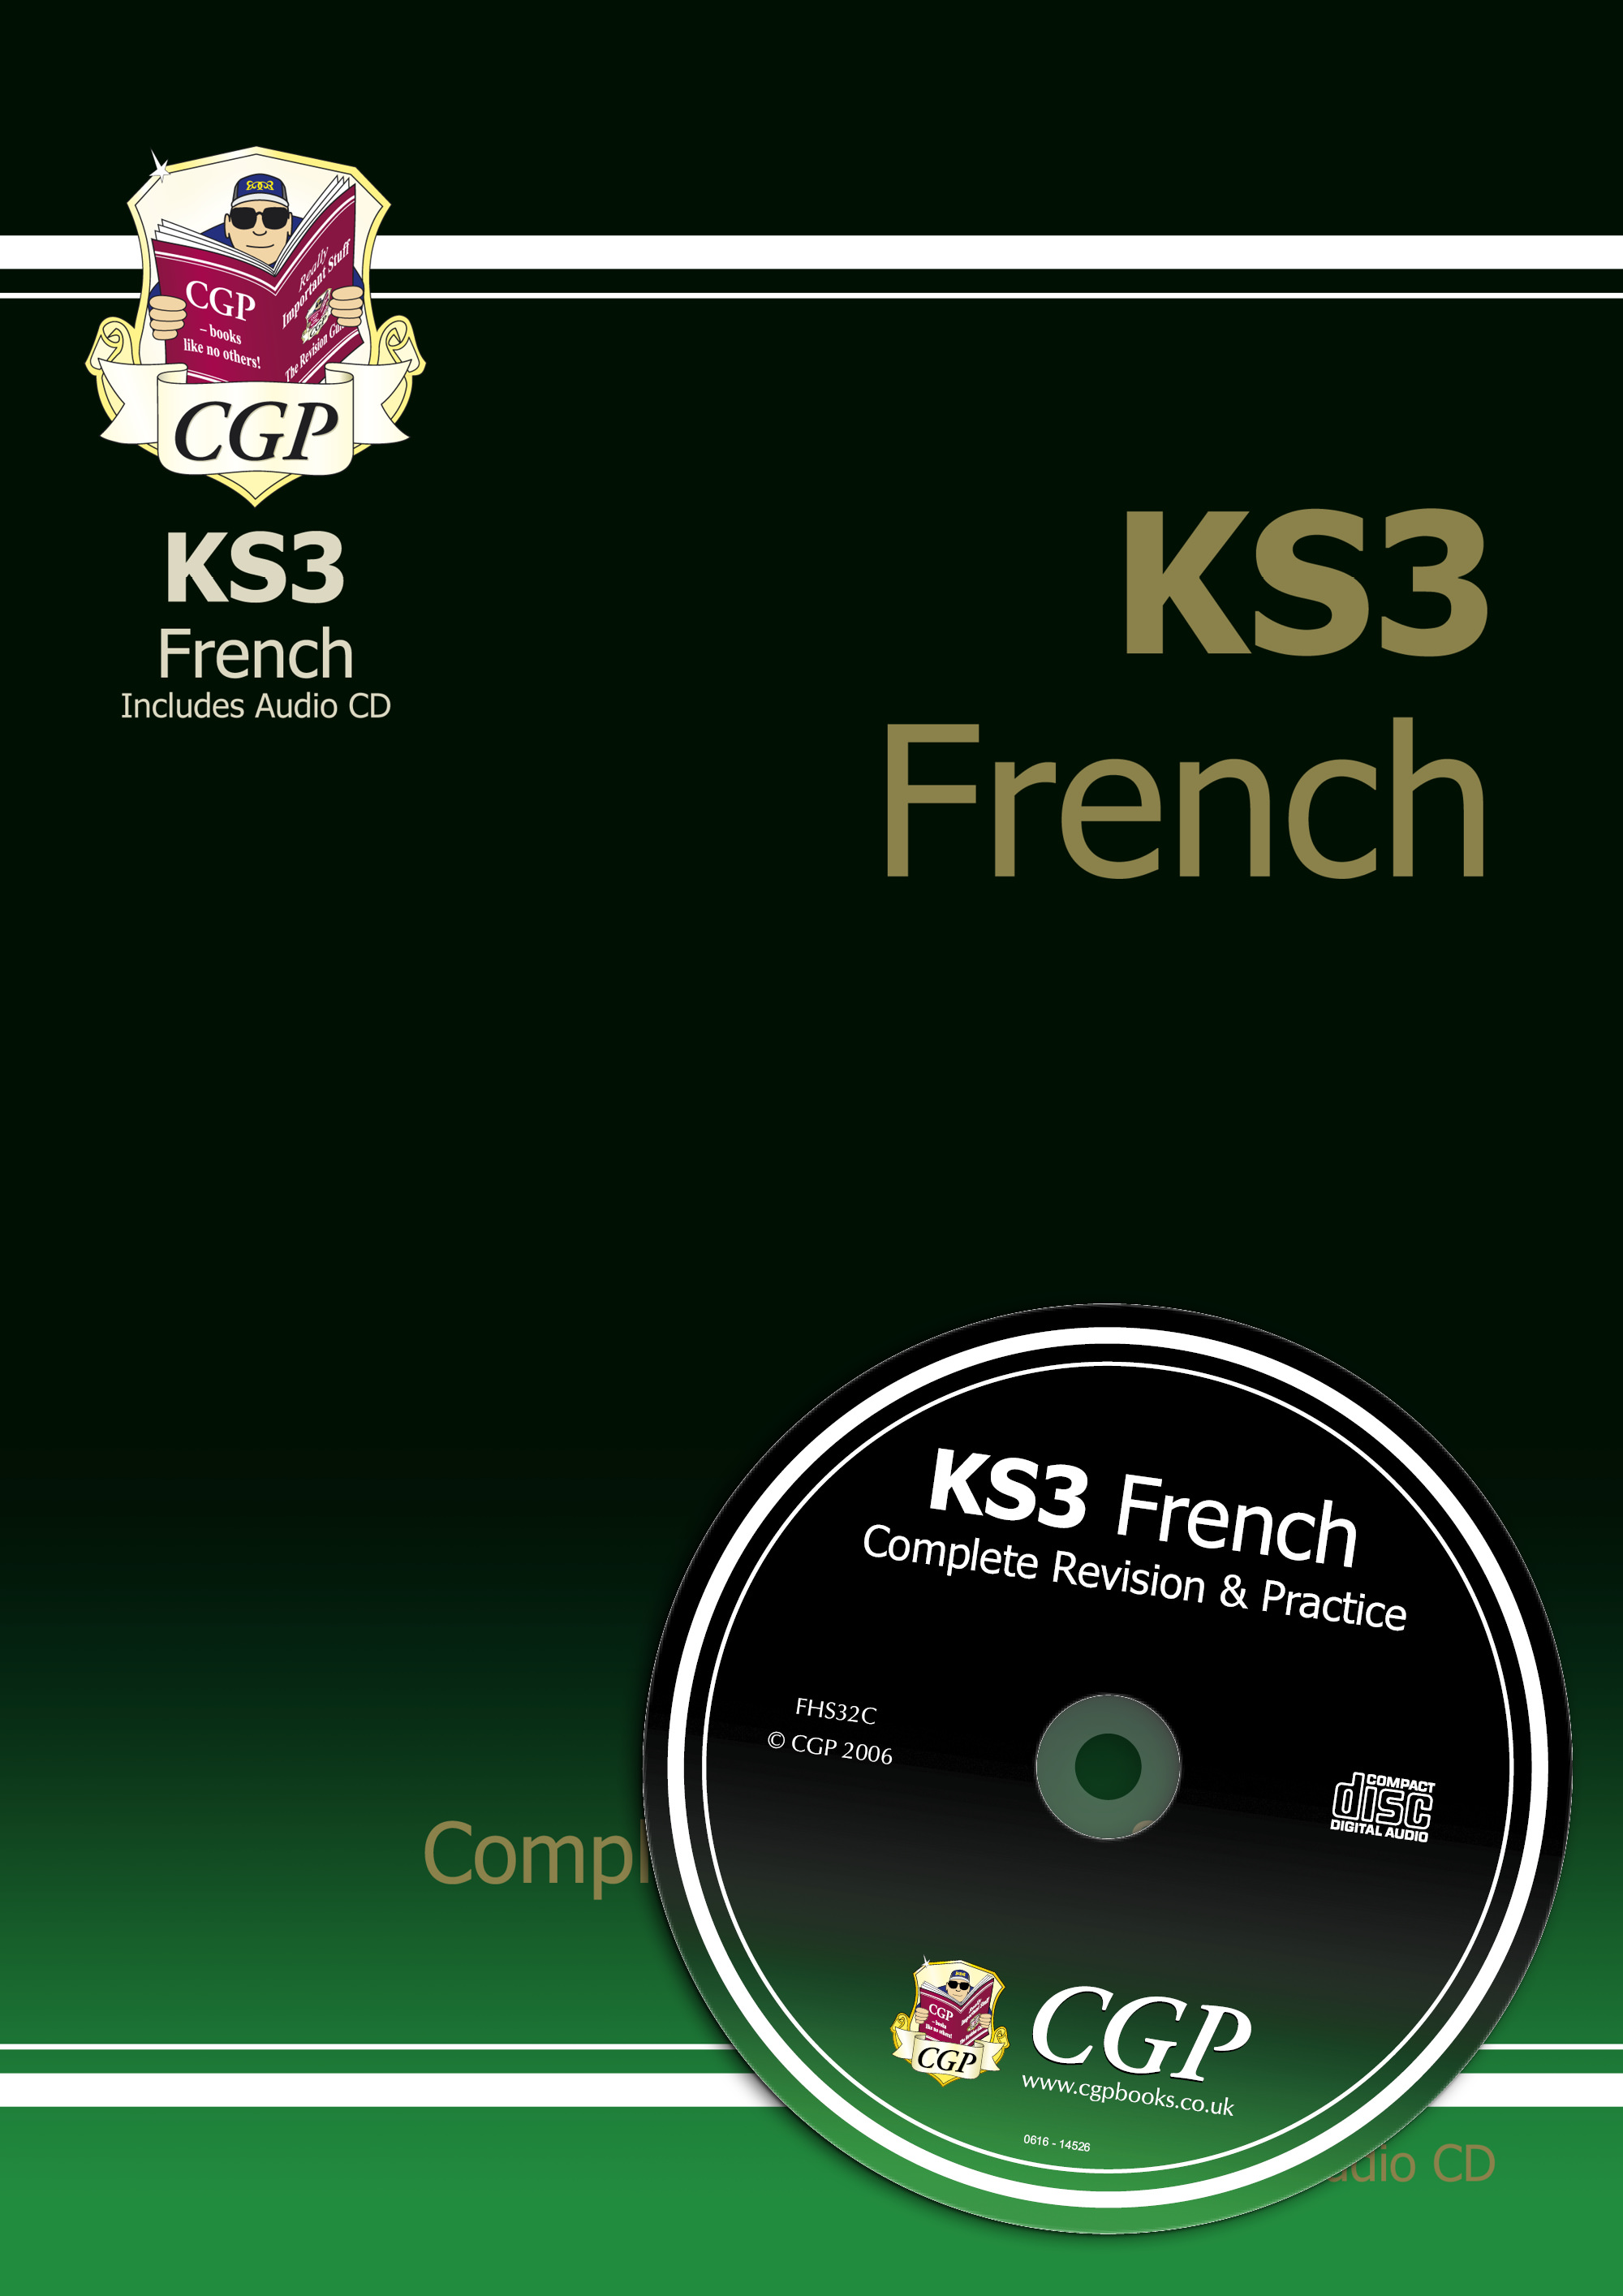 FHS32 - KS3 French Complete Revision & Practice with Audio CD